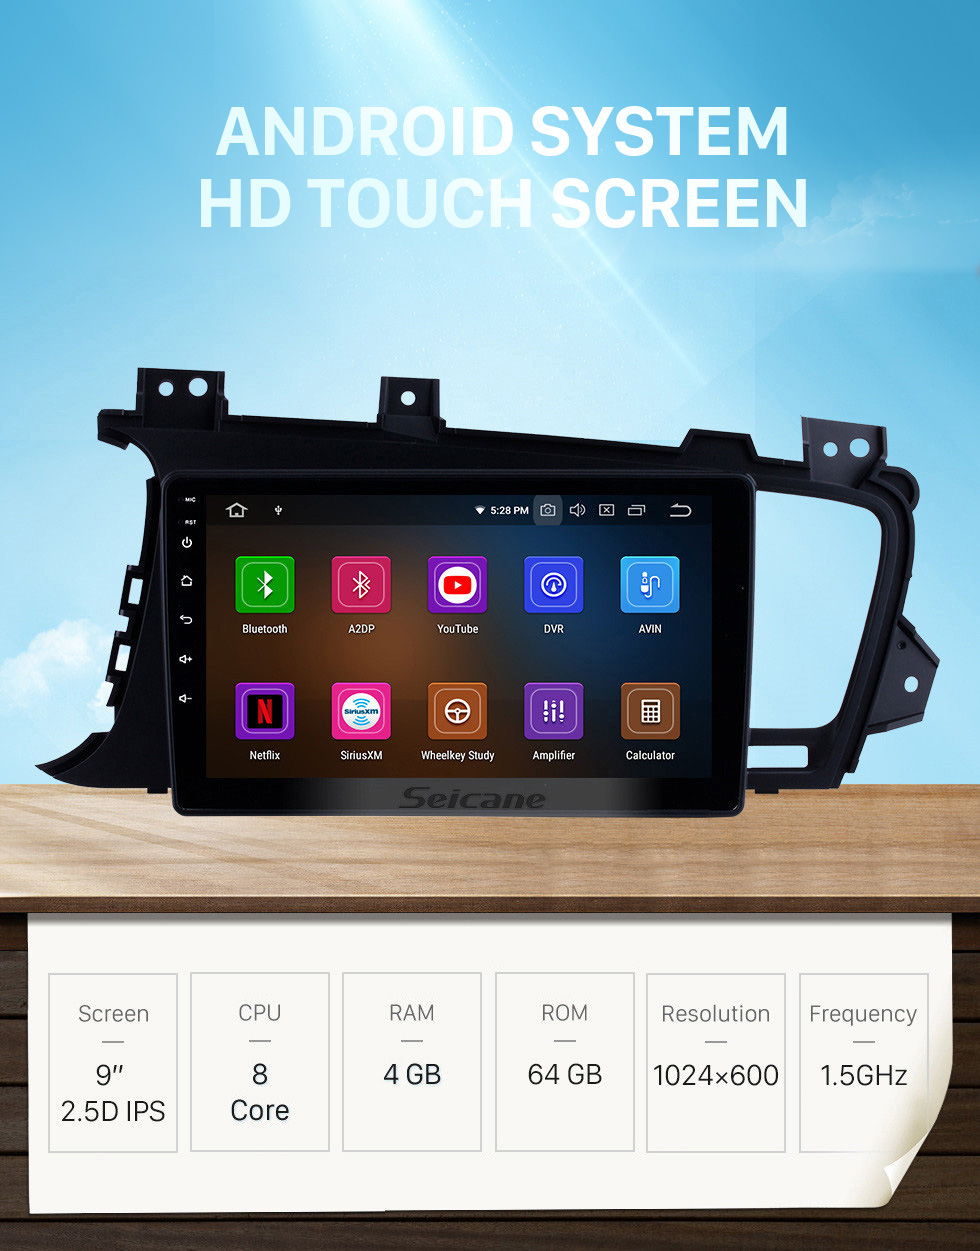 Seicane Android 10.0 Radio DVD player GPS navigation system for 2011 2012 2013 2014 KIA K5 LHD with HD 1024*600 touch screen Bluetooth  OBD2 DVR 3G WIFI Steering Wheel Control USB SD Rearview camera TV 1080P Video Mirror link